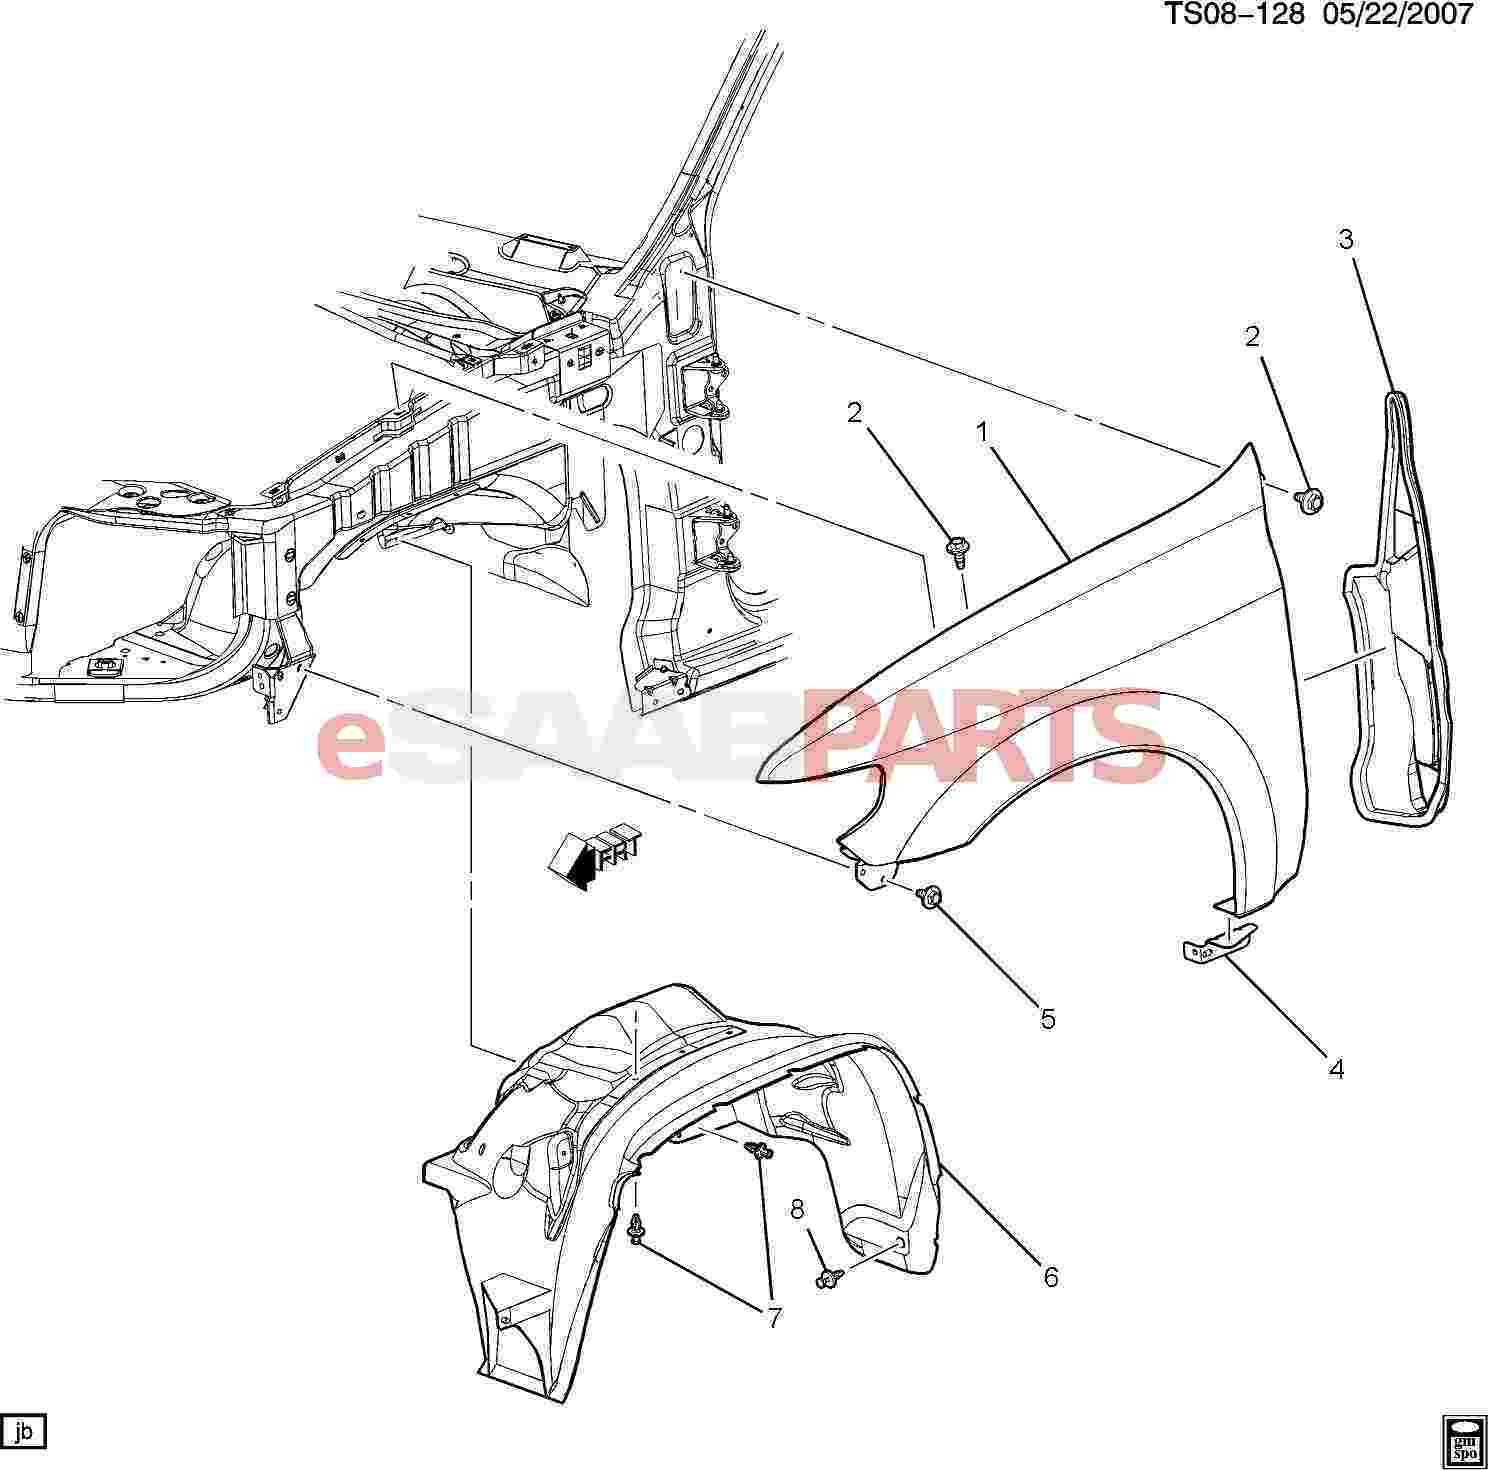 Car Front End Diagram Esaabparts Saab 9 7x Car Body External Parts Fender Of Car Front End Diagram